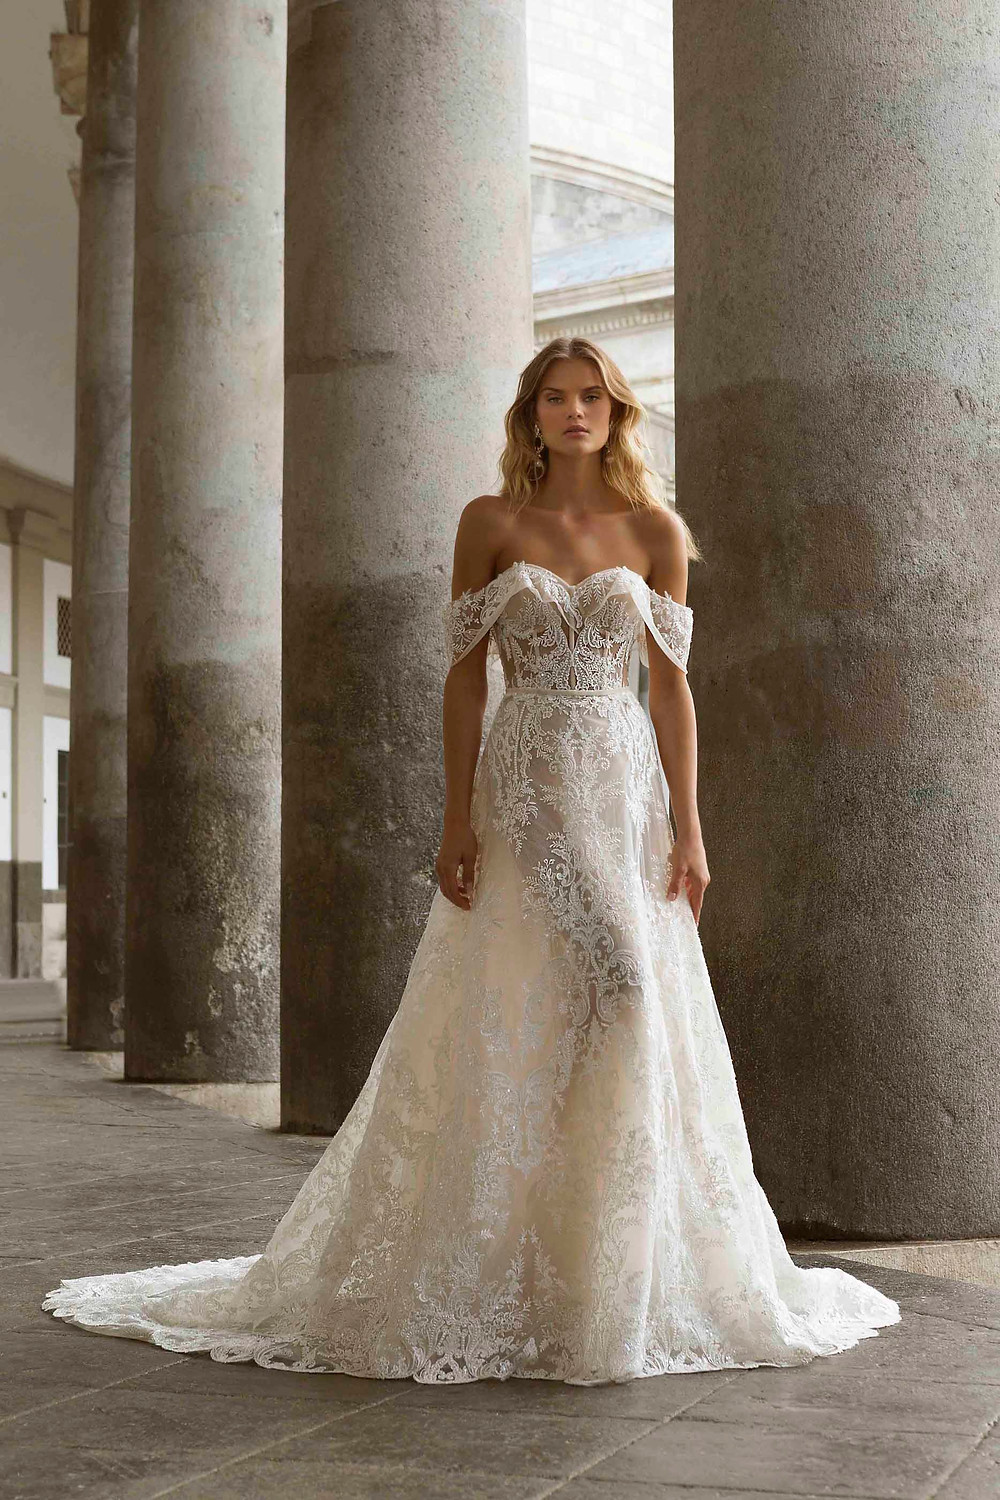 A Berta 2020 ivory, off the shoulder, lace A-line wedding dress with corset top